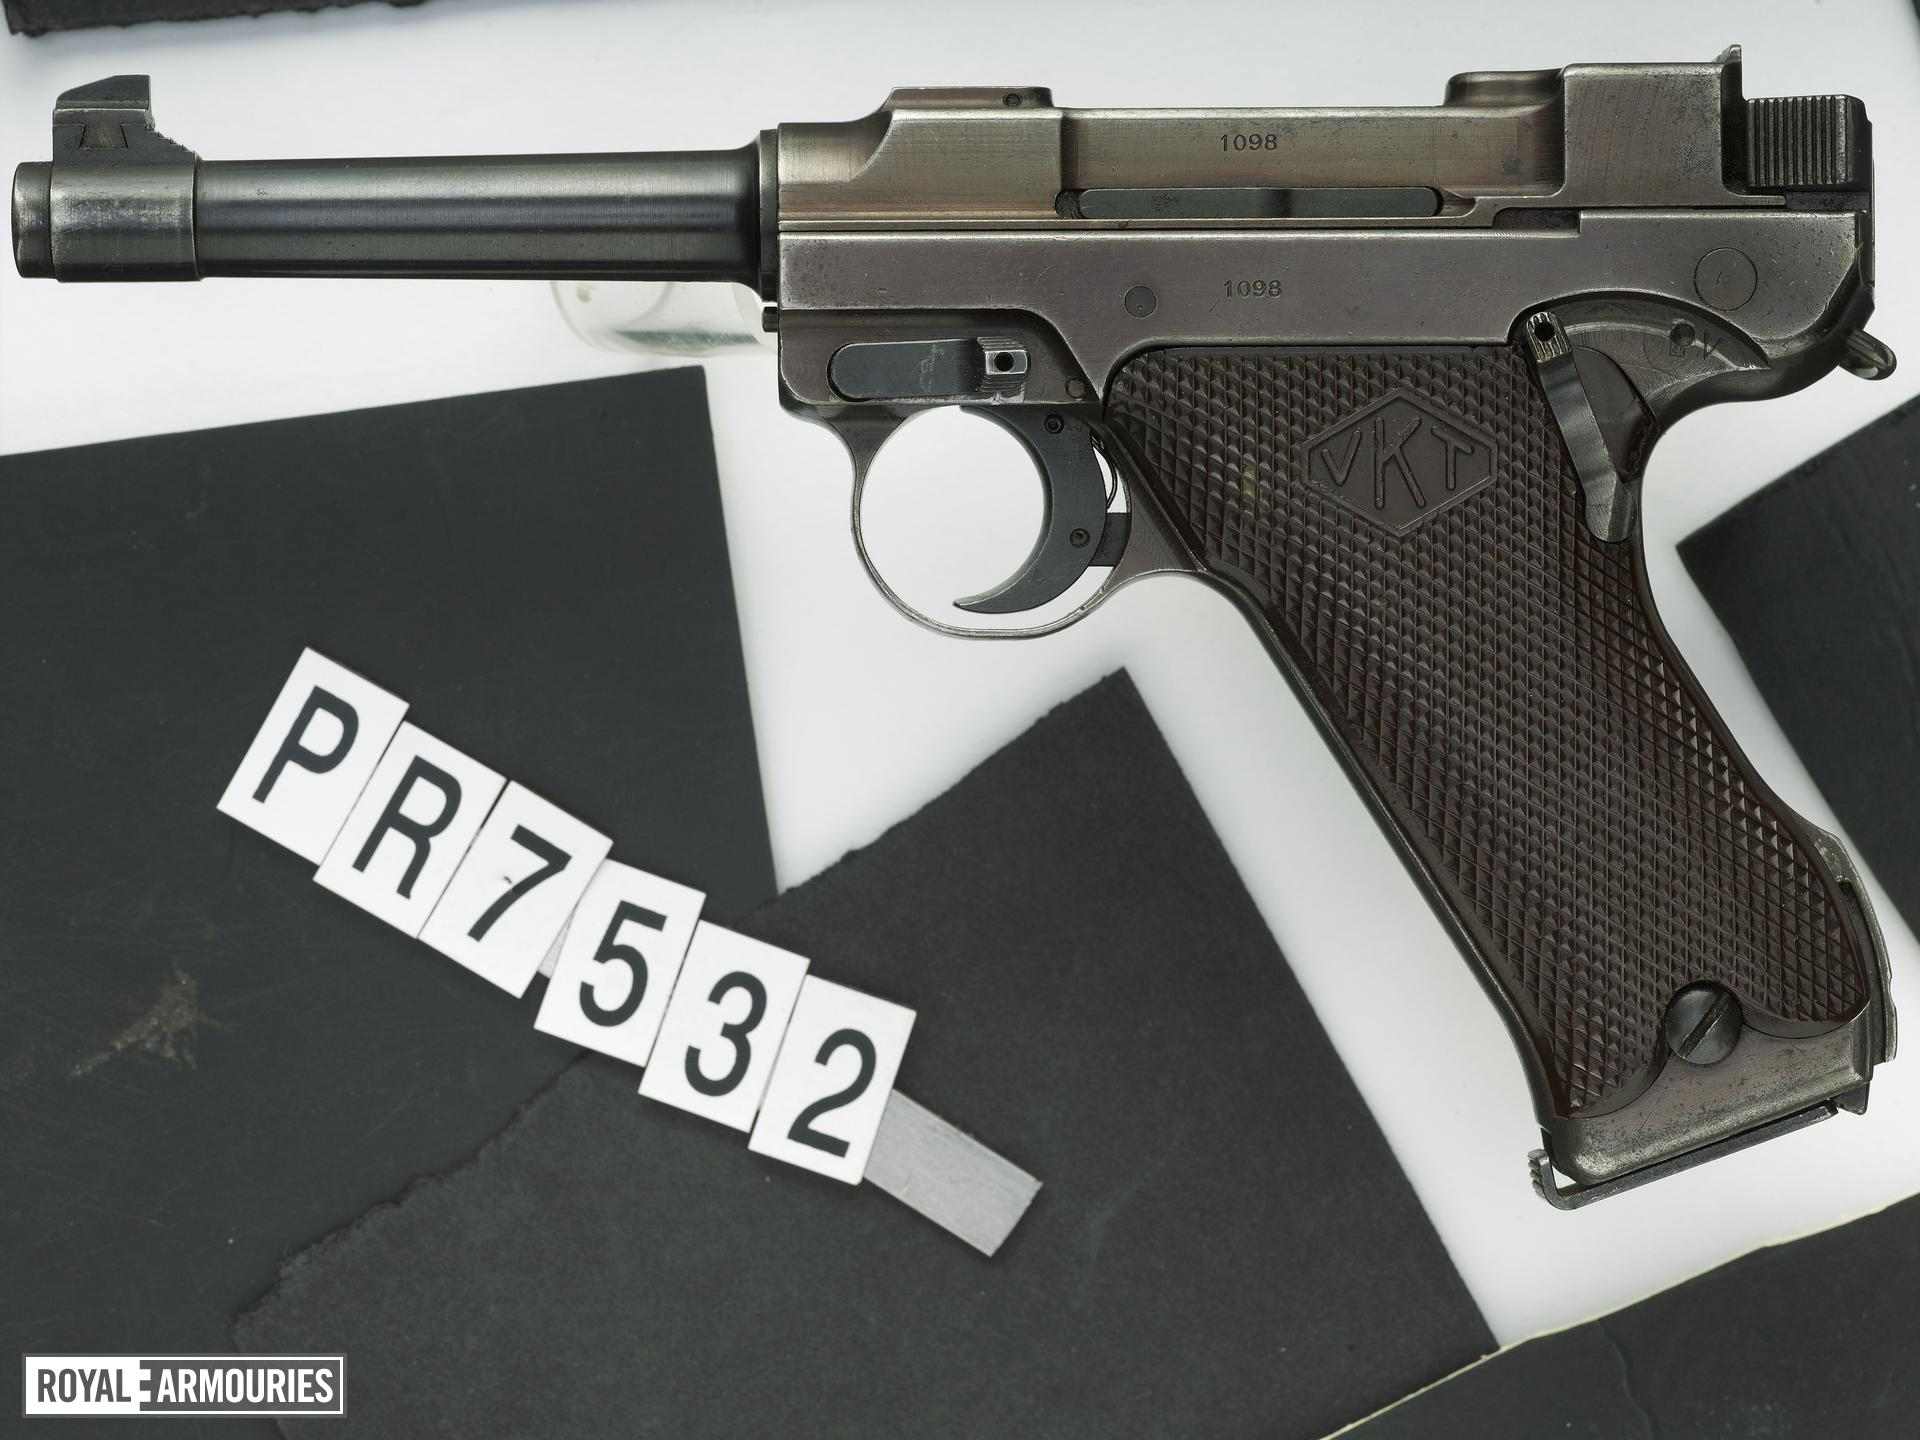 Centrefire self-loading pistol - Lahti L-35, 1st Model Experimental version, one of 99 made in 1938.